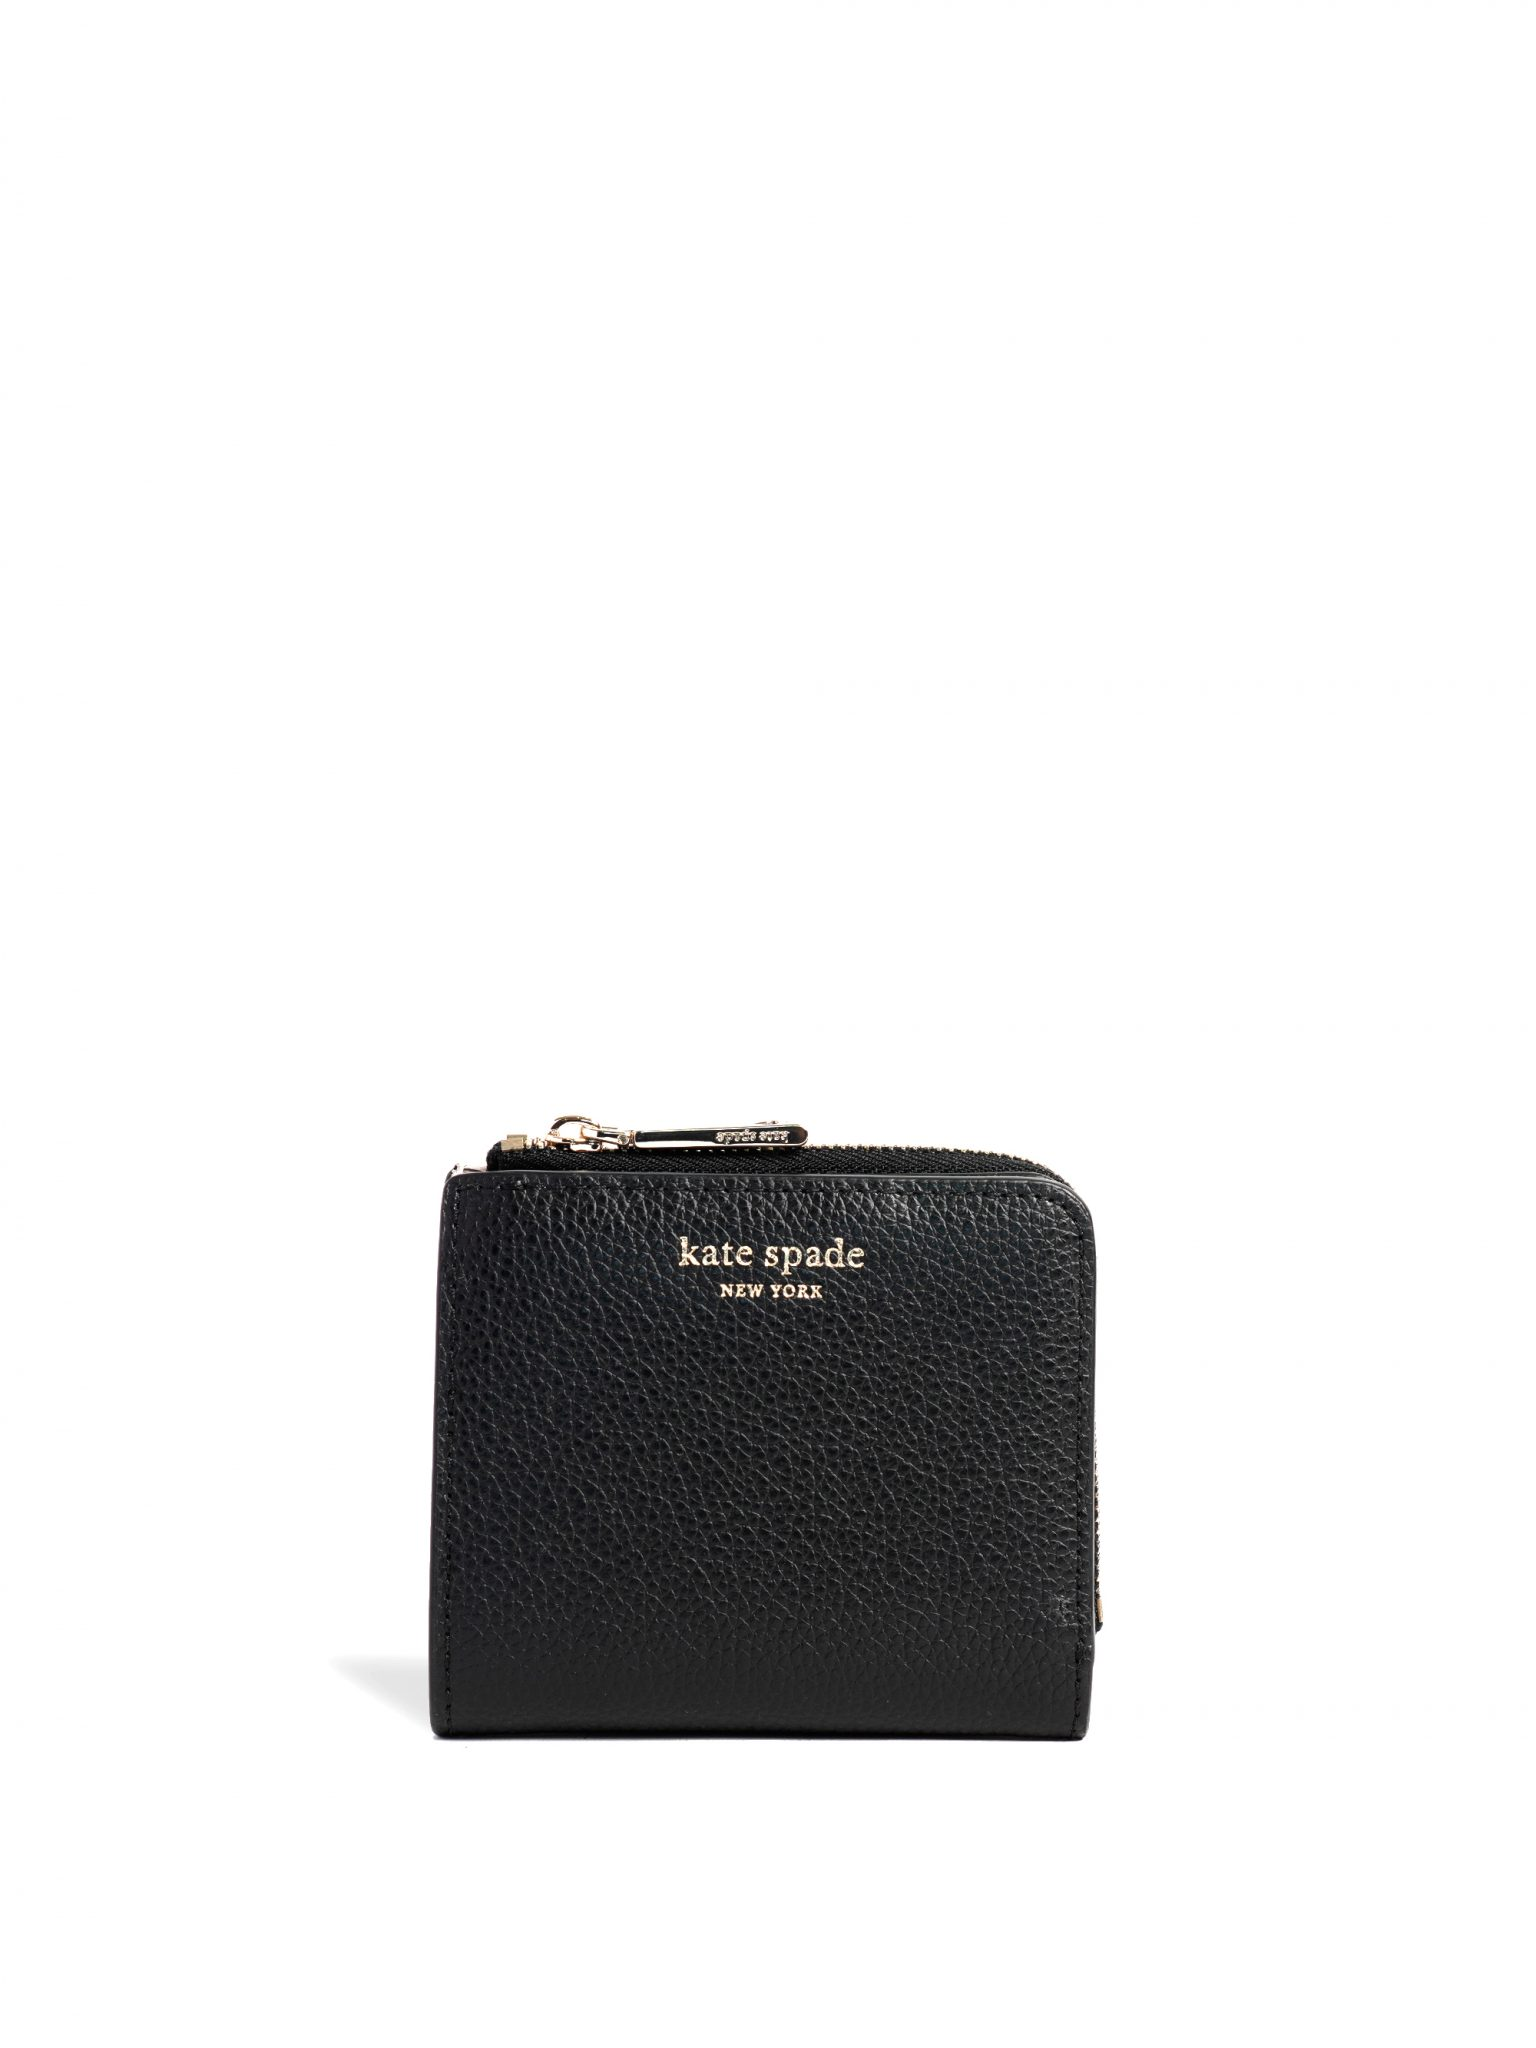 mens wallet with zip coin compartment